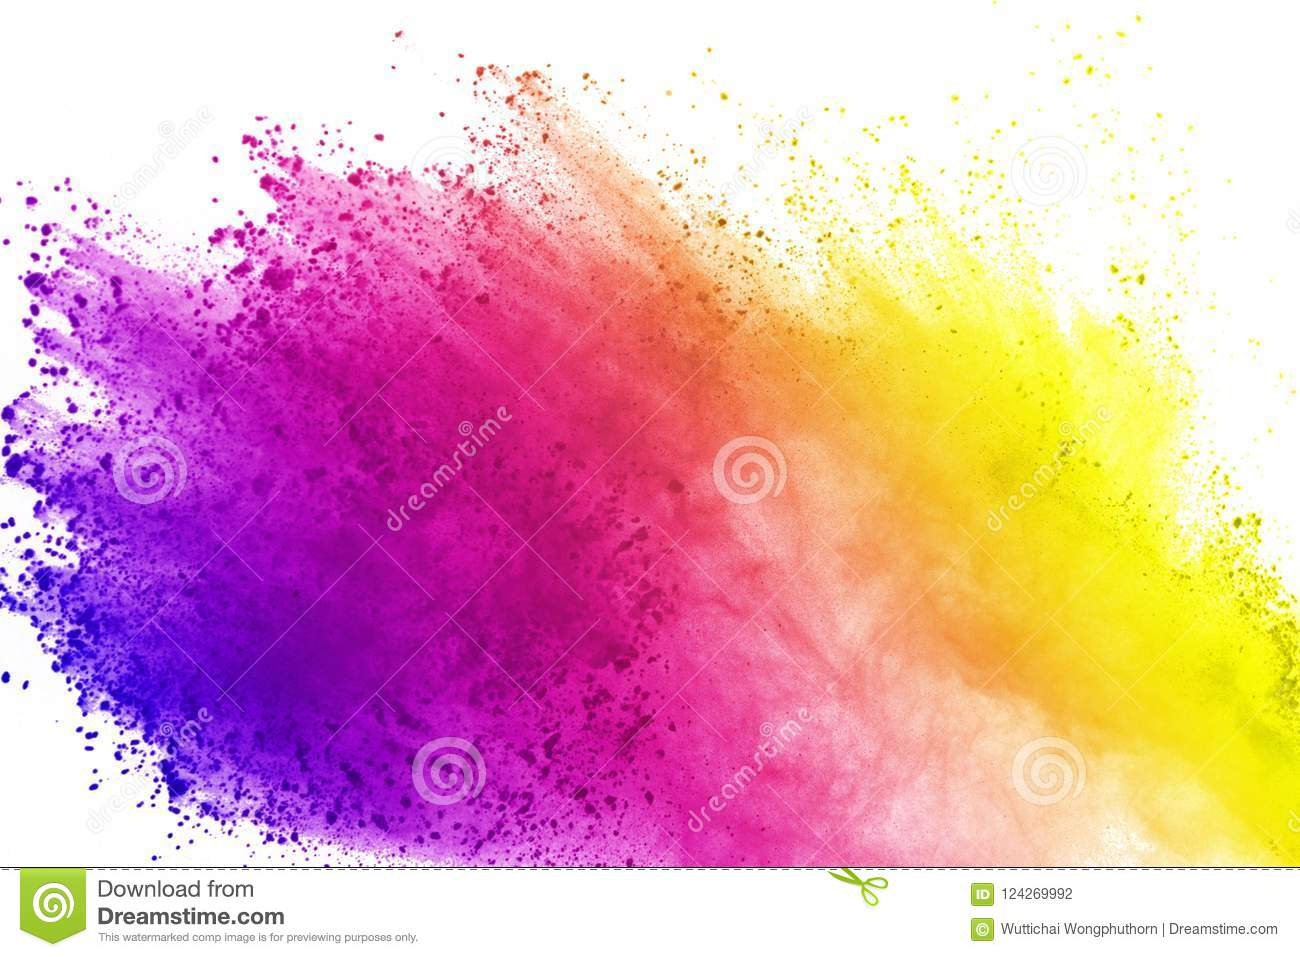 Explosion of colored powder, isolated on white background. Abstract of colored dust splatted. Color cloud.